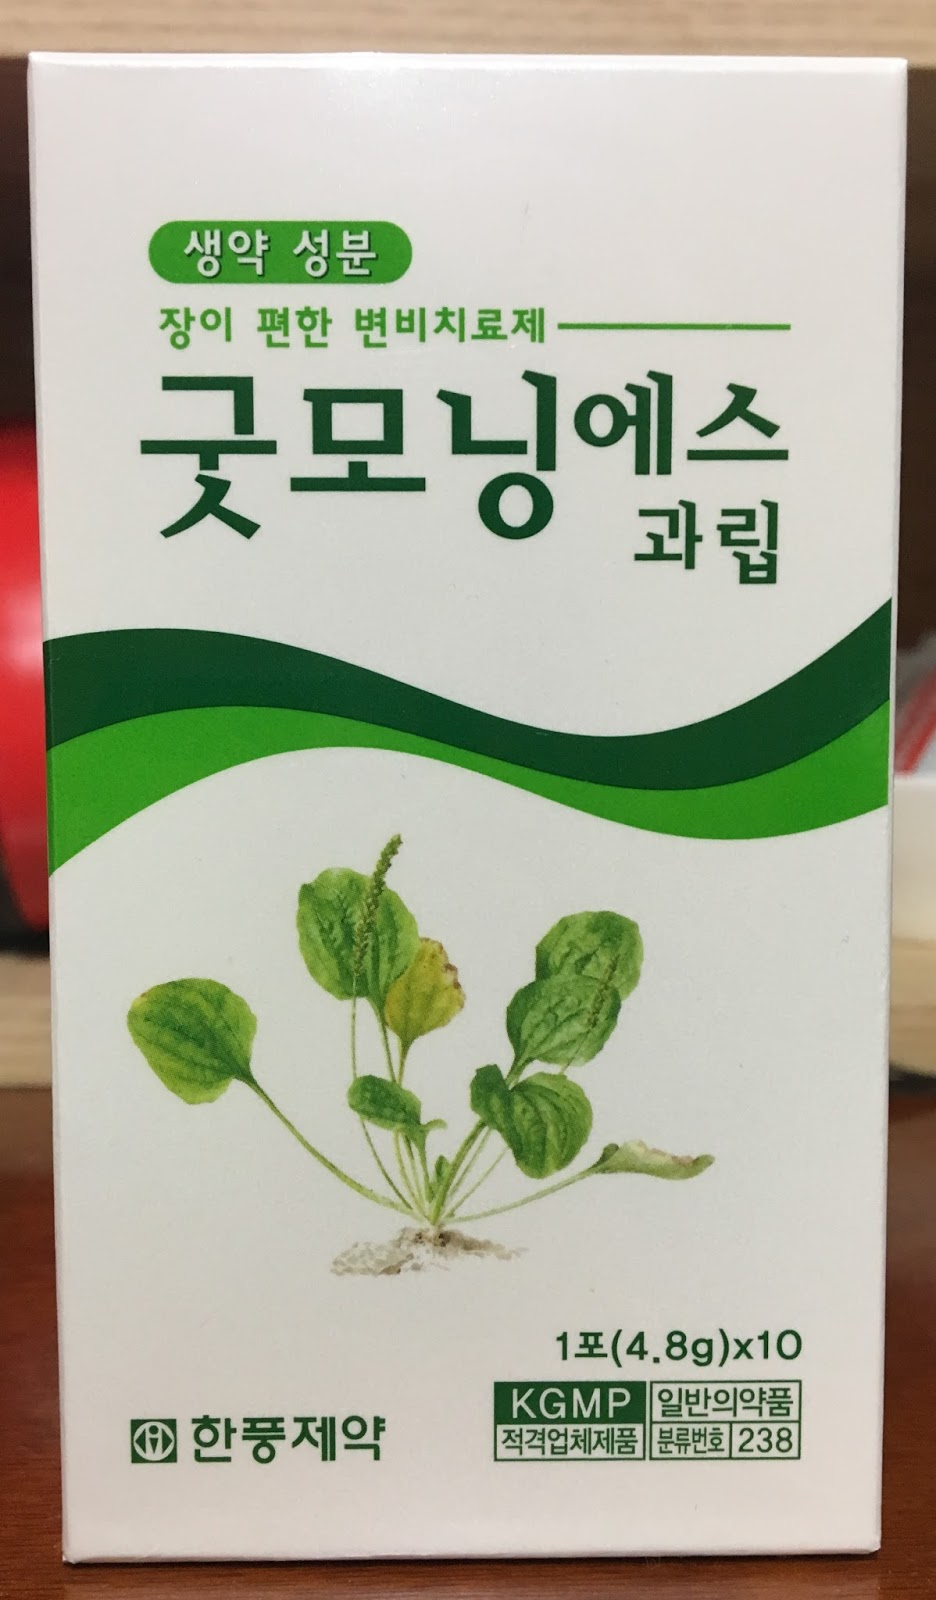 Translation Of Good Morning In Korean : Quot good morning s 굿모닝에스 korean laxative is seriously awesome